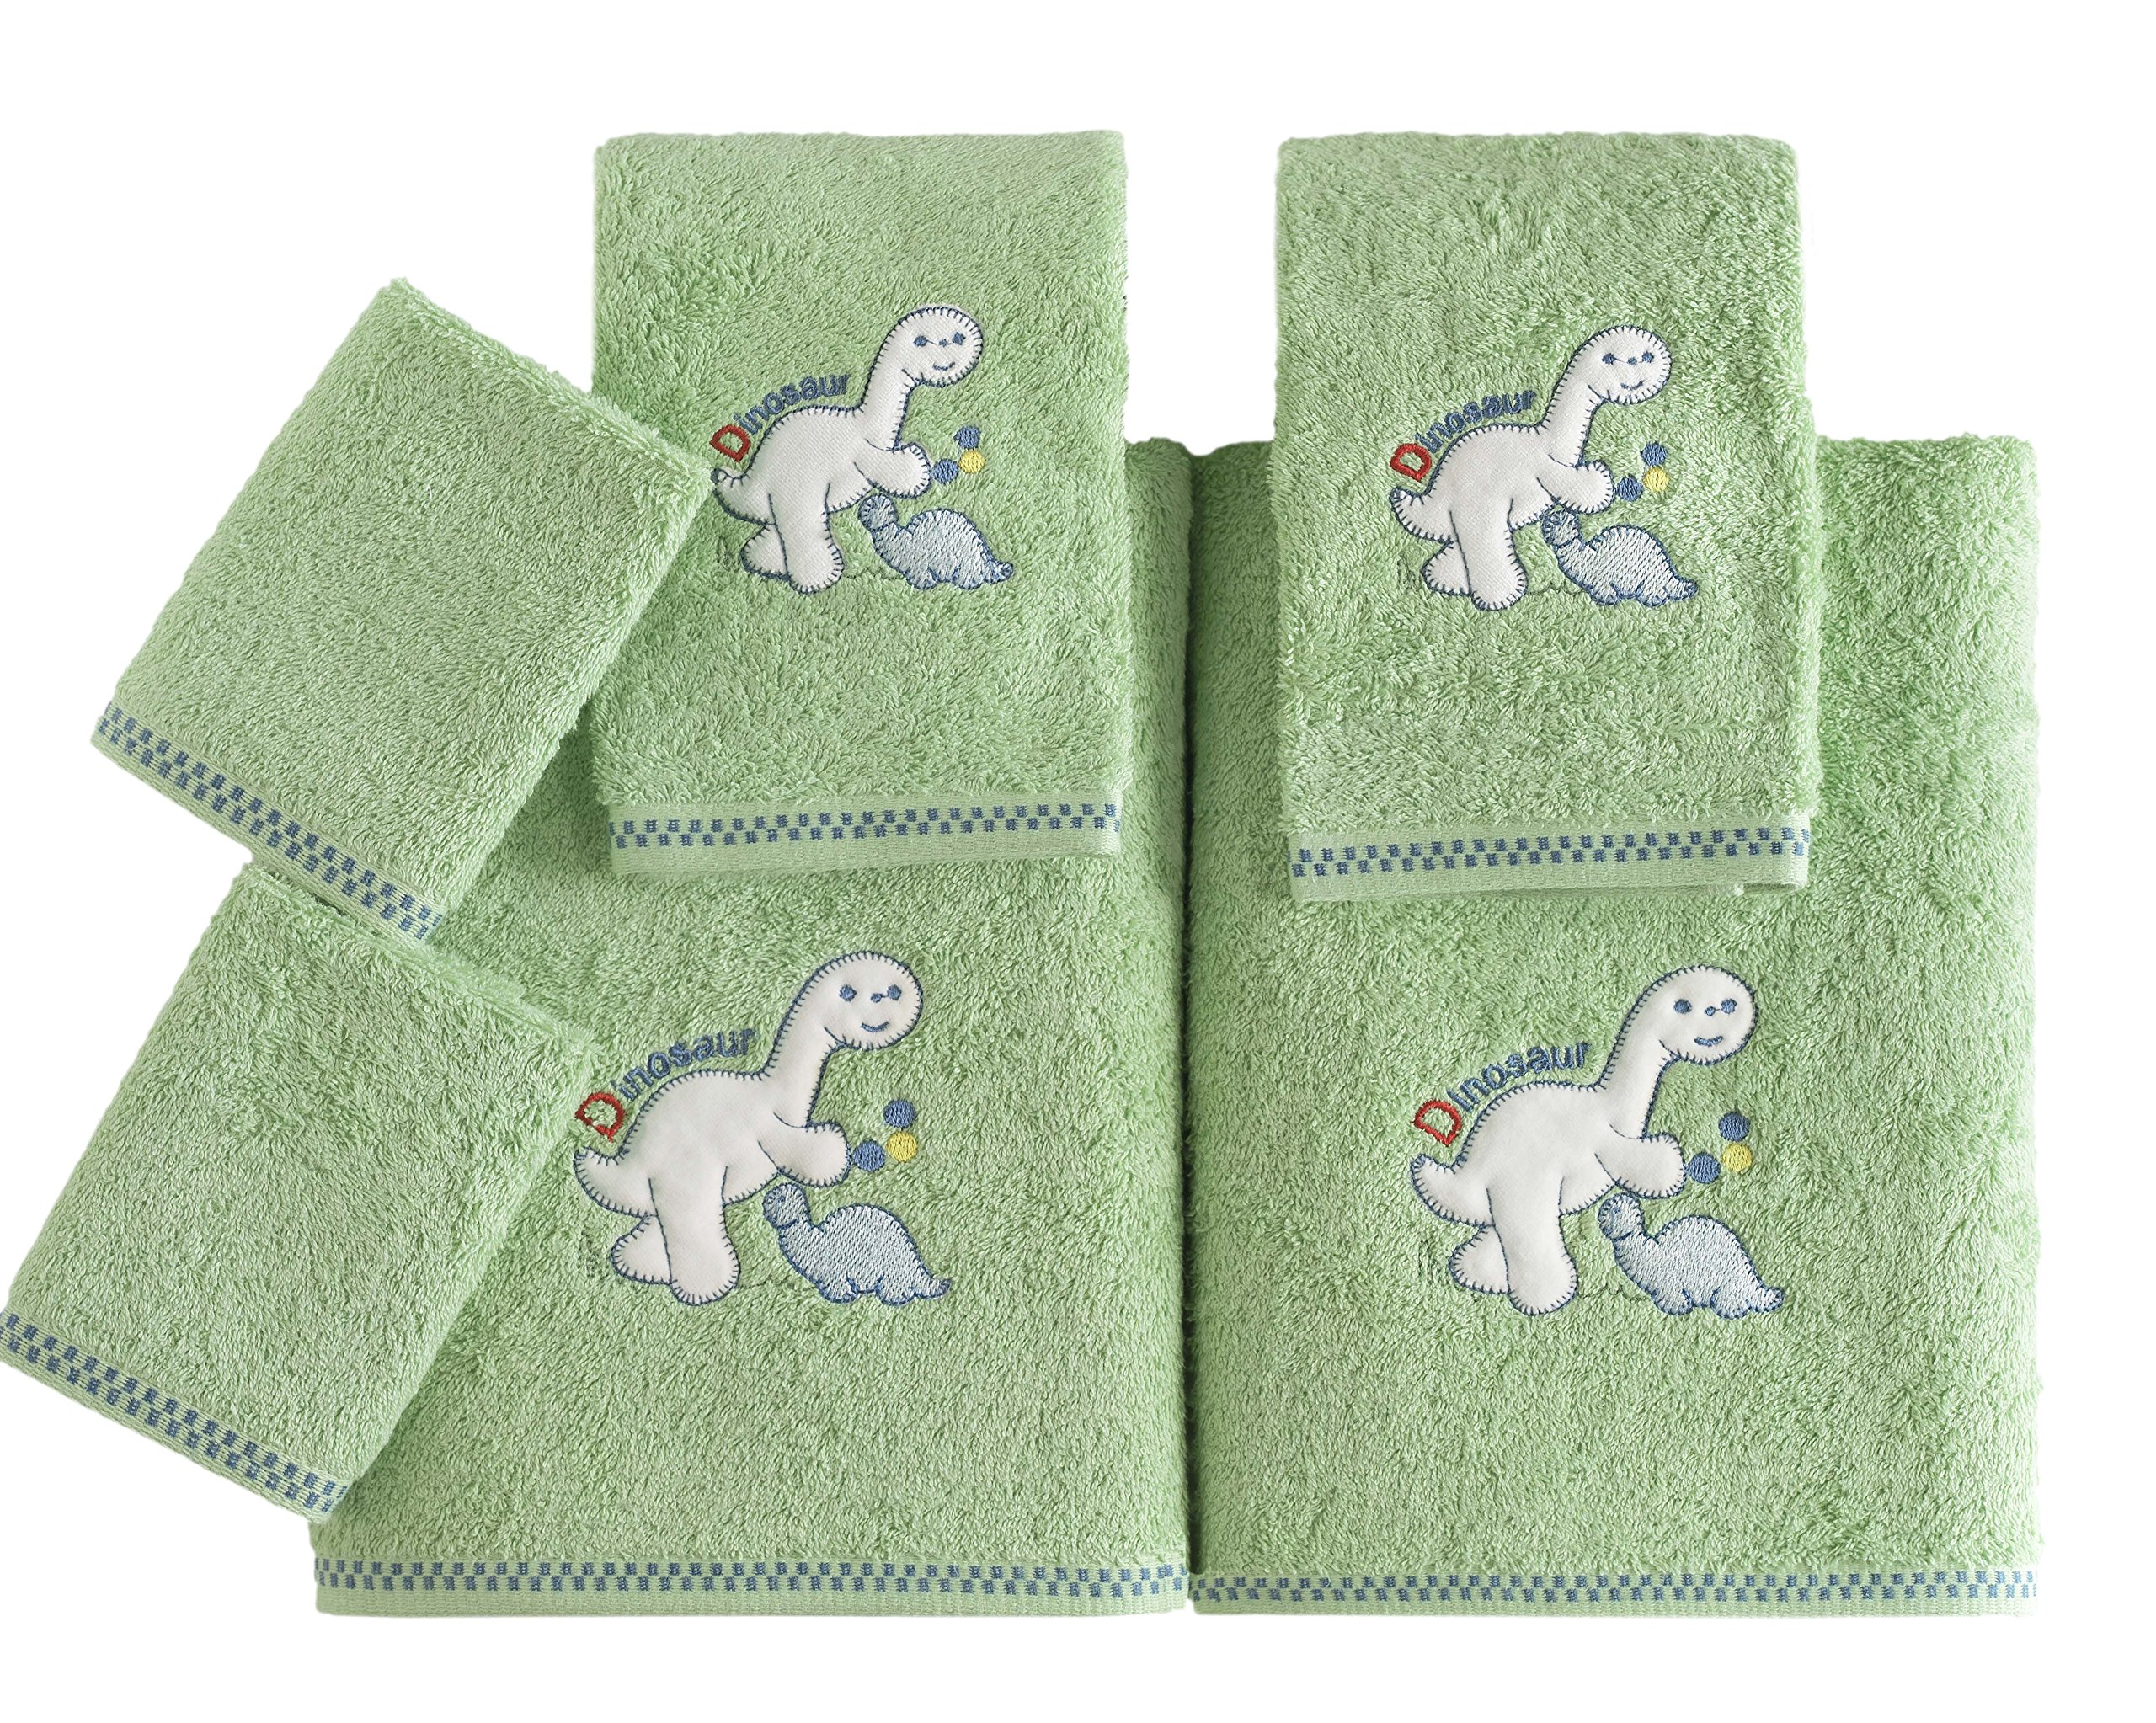 Kids Soft Premium Cotton Bath Towel Set - Made with 100% Pure Combed Cotton - 6 Piece Children Themed Set (Dinosaur Theme)